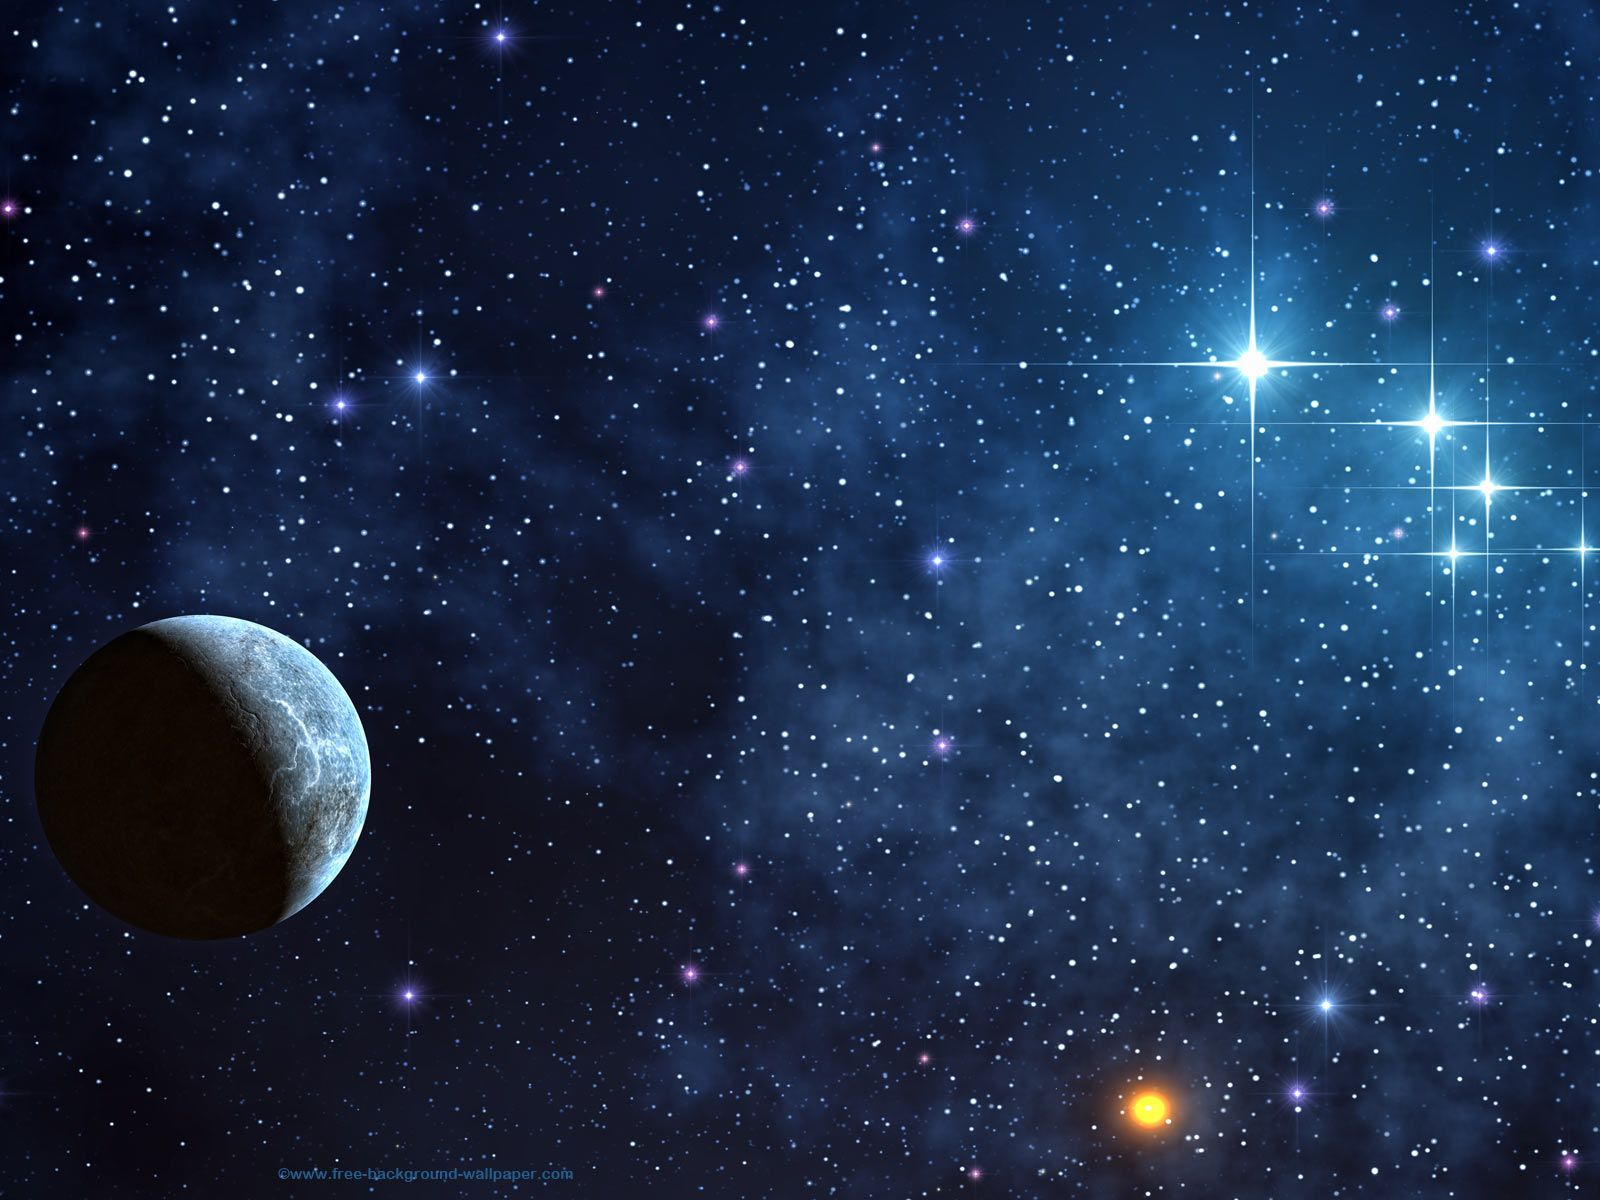 56 562498 moving space wallpapers space stars background earth